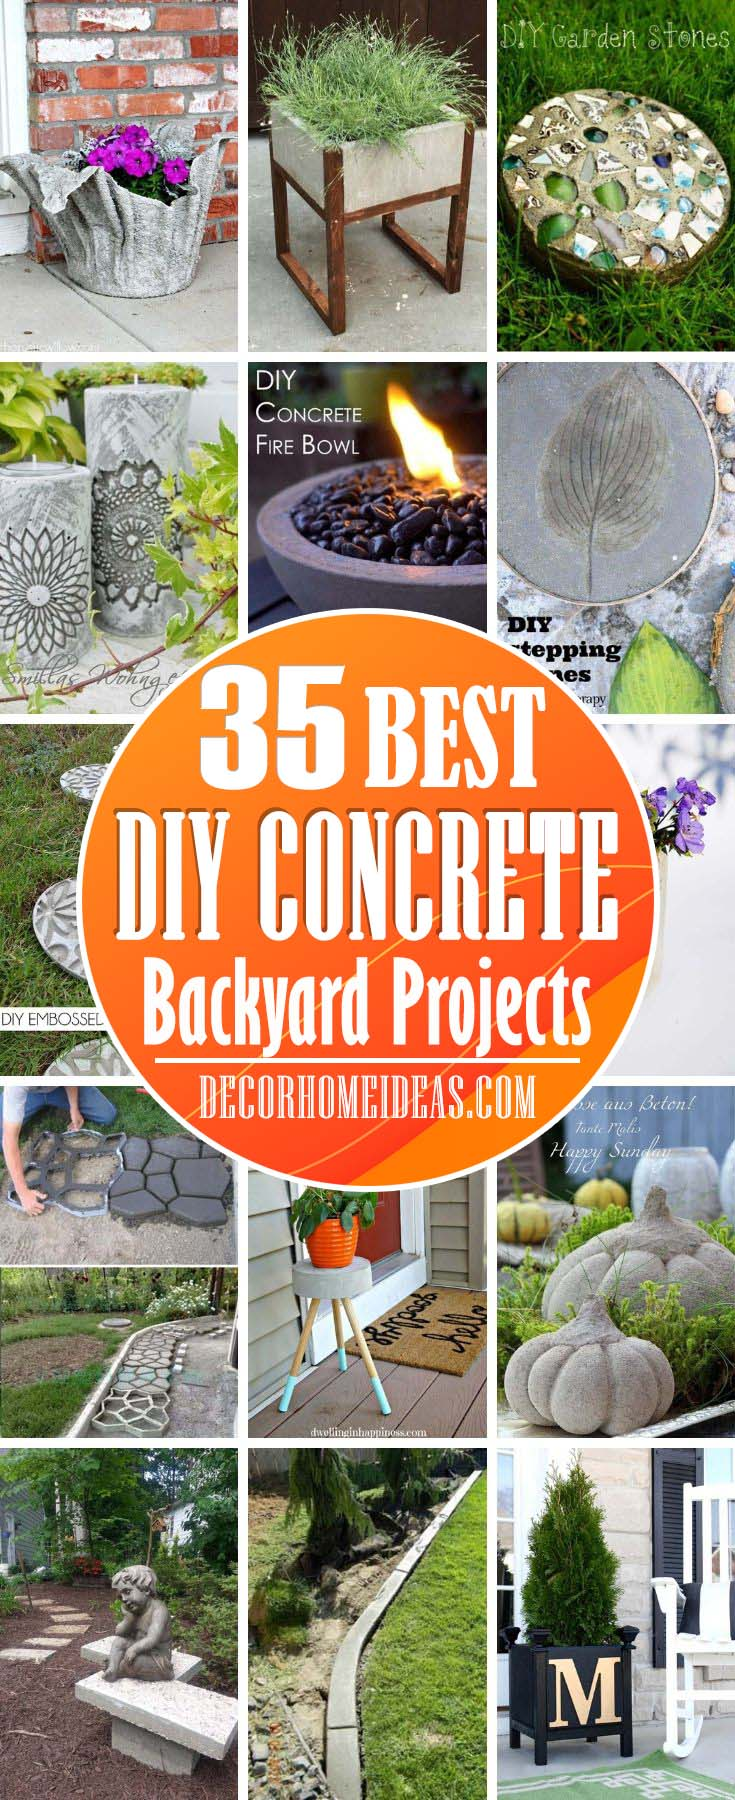 Best DIY Concrete Backyard Projects. Planters, fire pits, garden edging and decorations made from concrete to spruce up your garden or backyard. #diy #concrete #garden #decorhomeideas